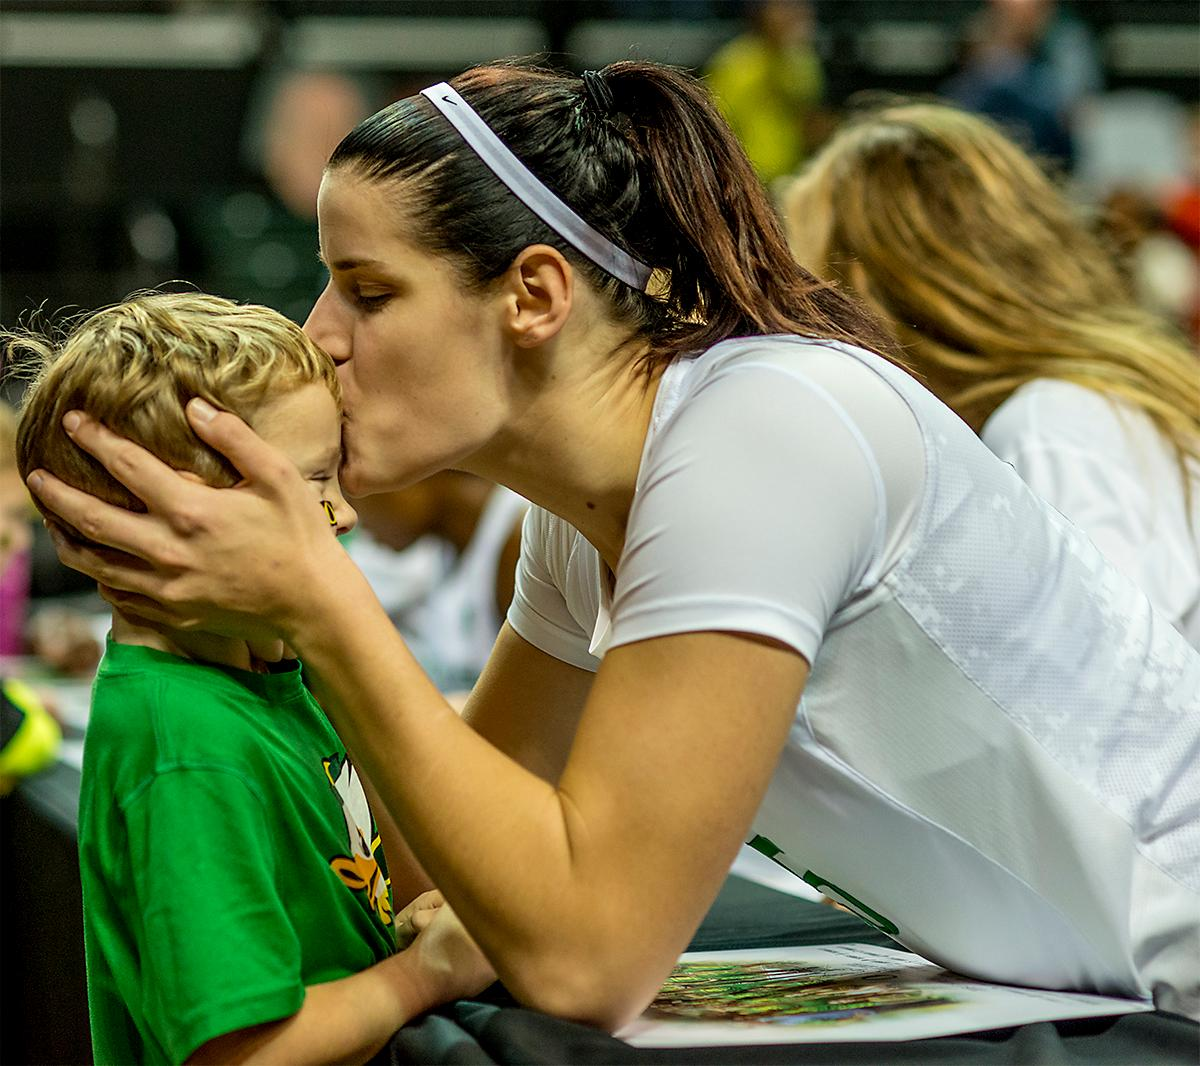 The Duck's Jacinta Vandenberg (#15) gives a young fan a kiss as the Ducks team signs autographs after the game. The UO Ducks Women's basketball team took the win against Idaho on Tuesday at Matthew Knight Arena, 73-70, in a game that saw the Ducks force a miss at the buzzer. Maite Cazorla (#5) achieved a double-double with 14 points and 10 assists. Lexi Bando (#10) added 17 points, and made 5 out of 6 three pointers. The Ducks are now 10-2 this season. Photos by August Frank, Oregon News Lab